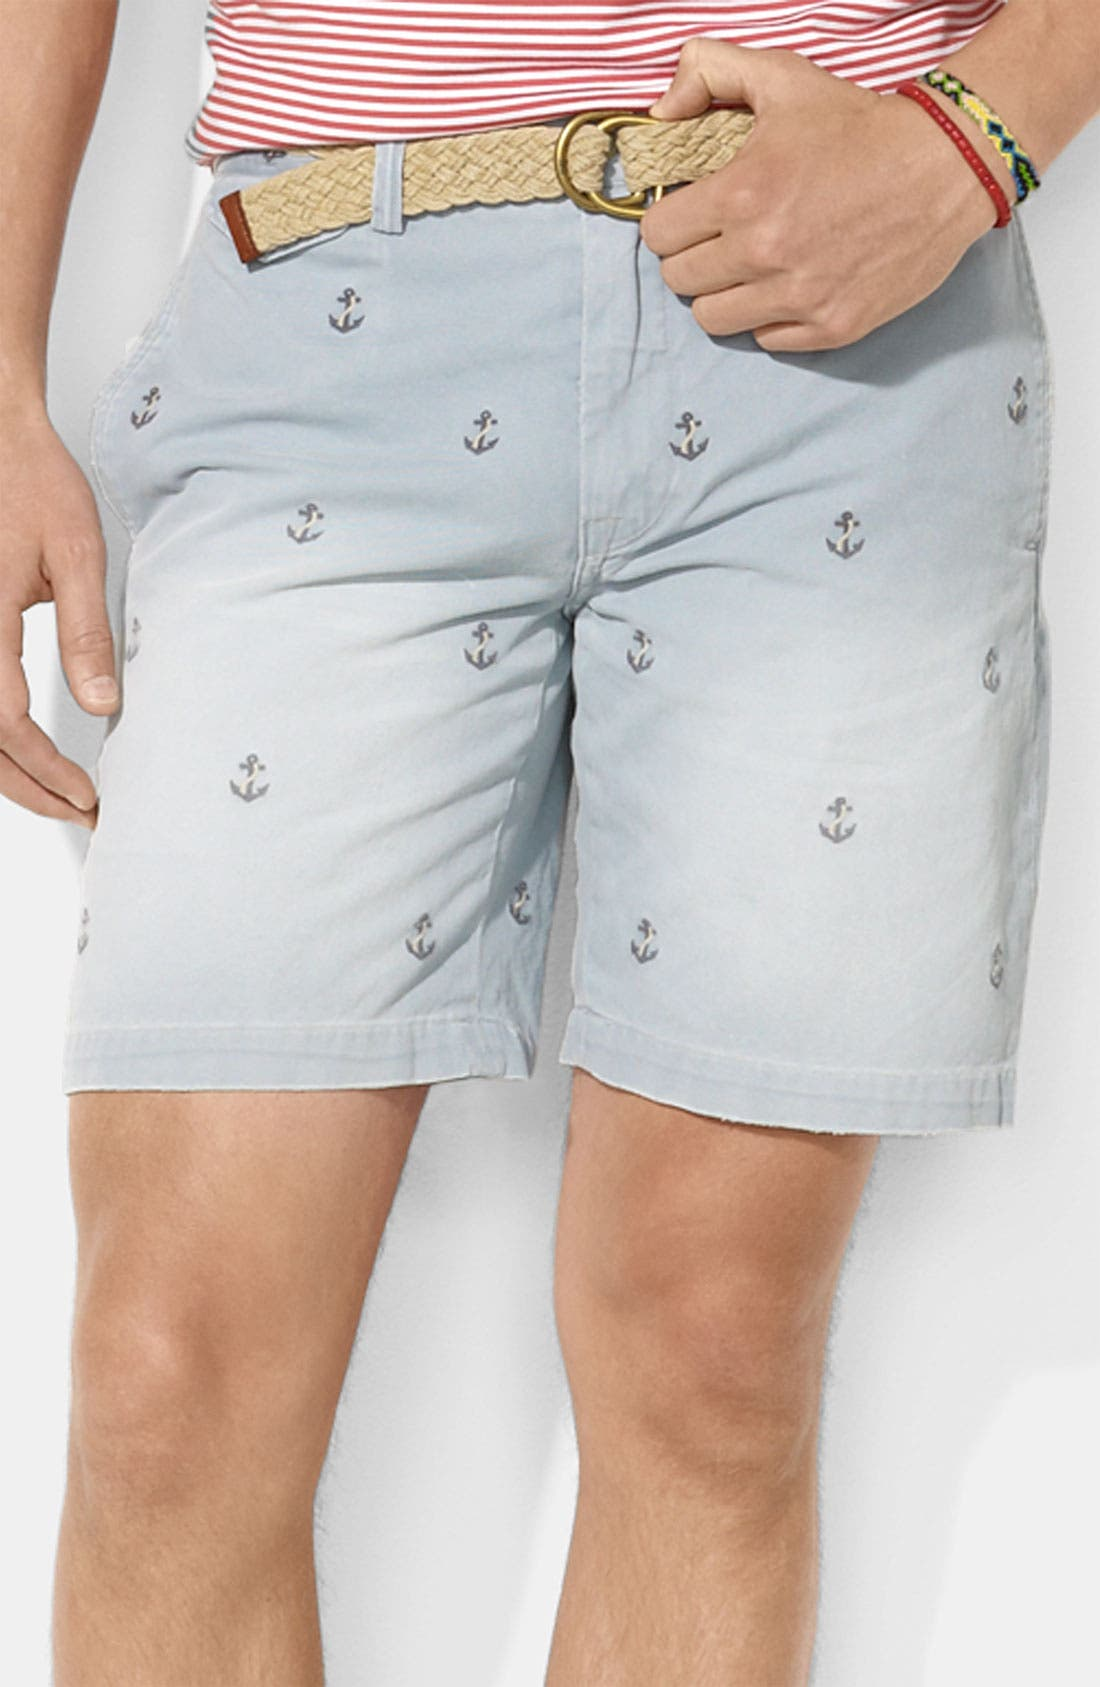 Alternate Image 1 Selected - Polo Ralph Lauren Flat Front Shorts